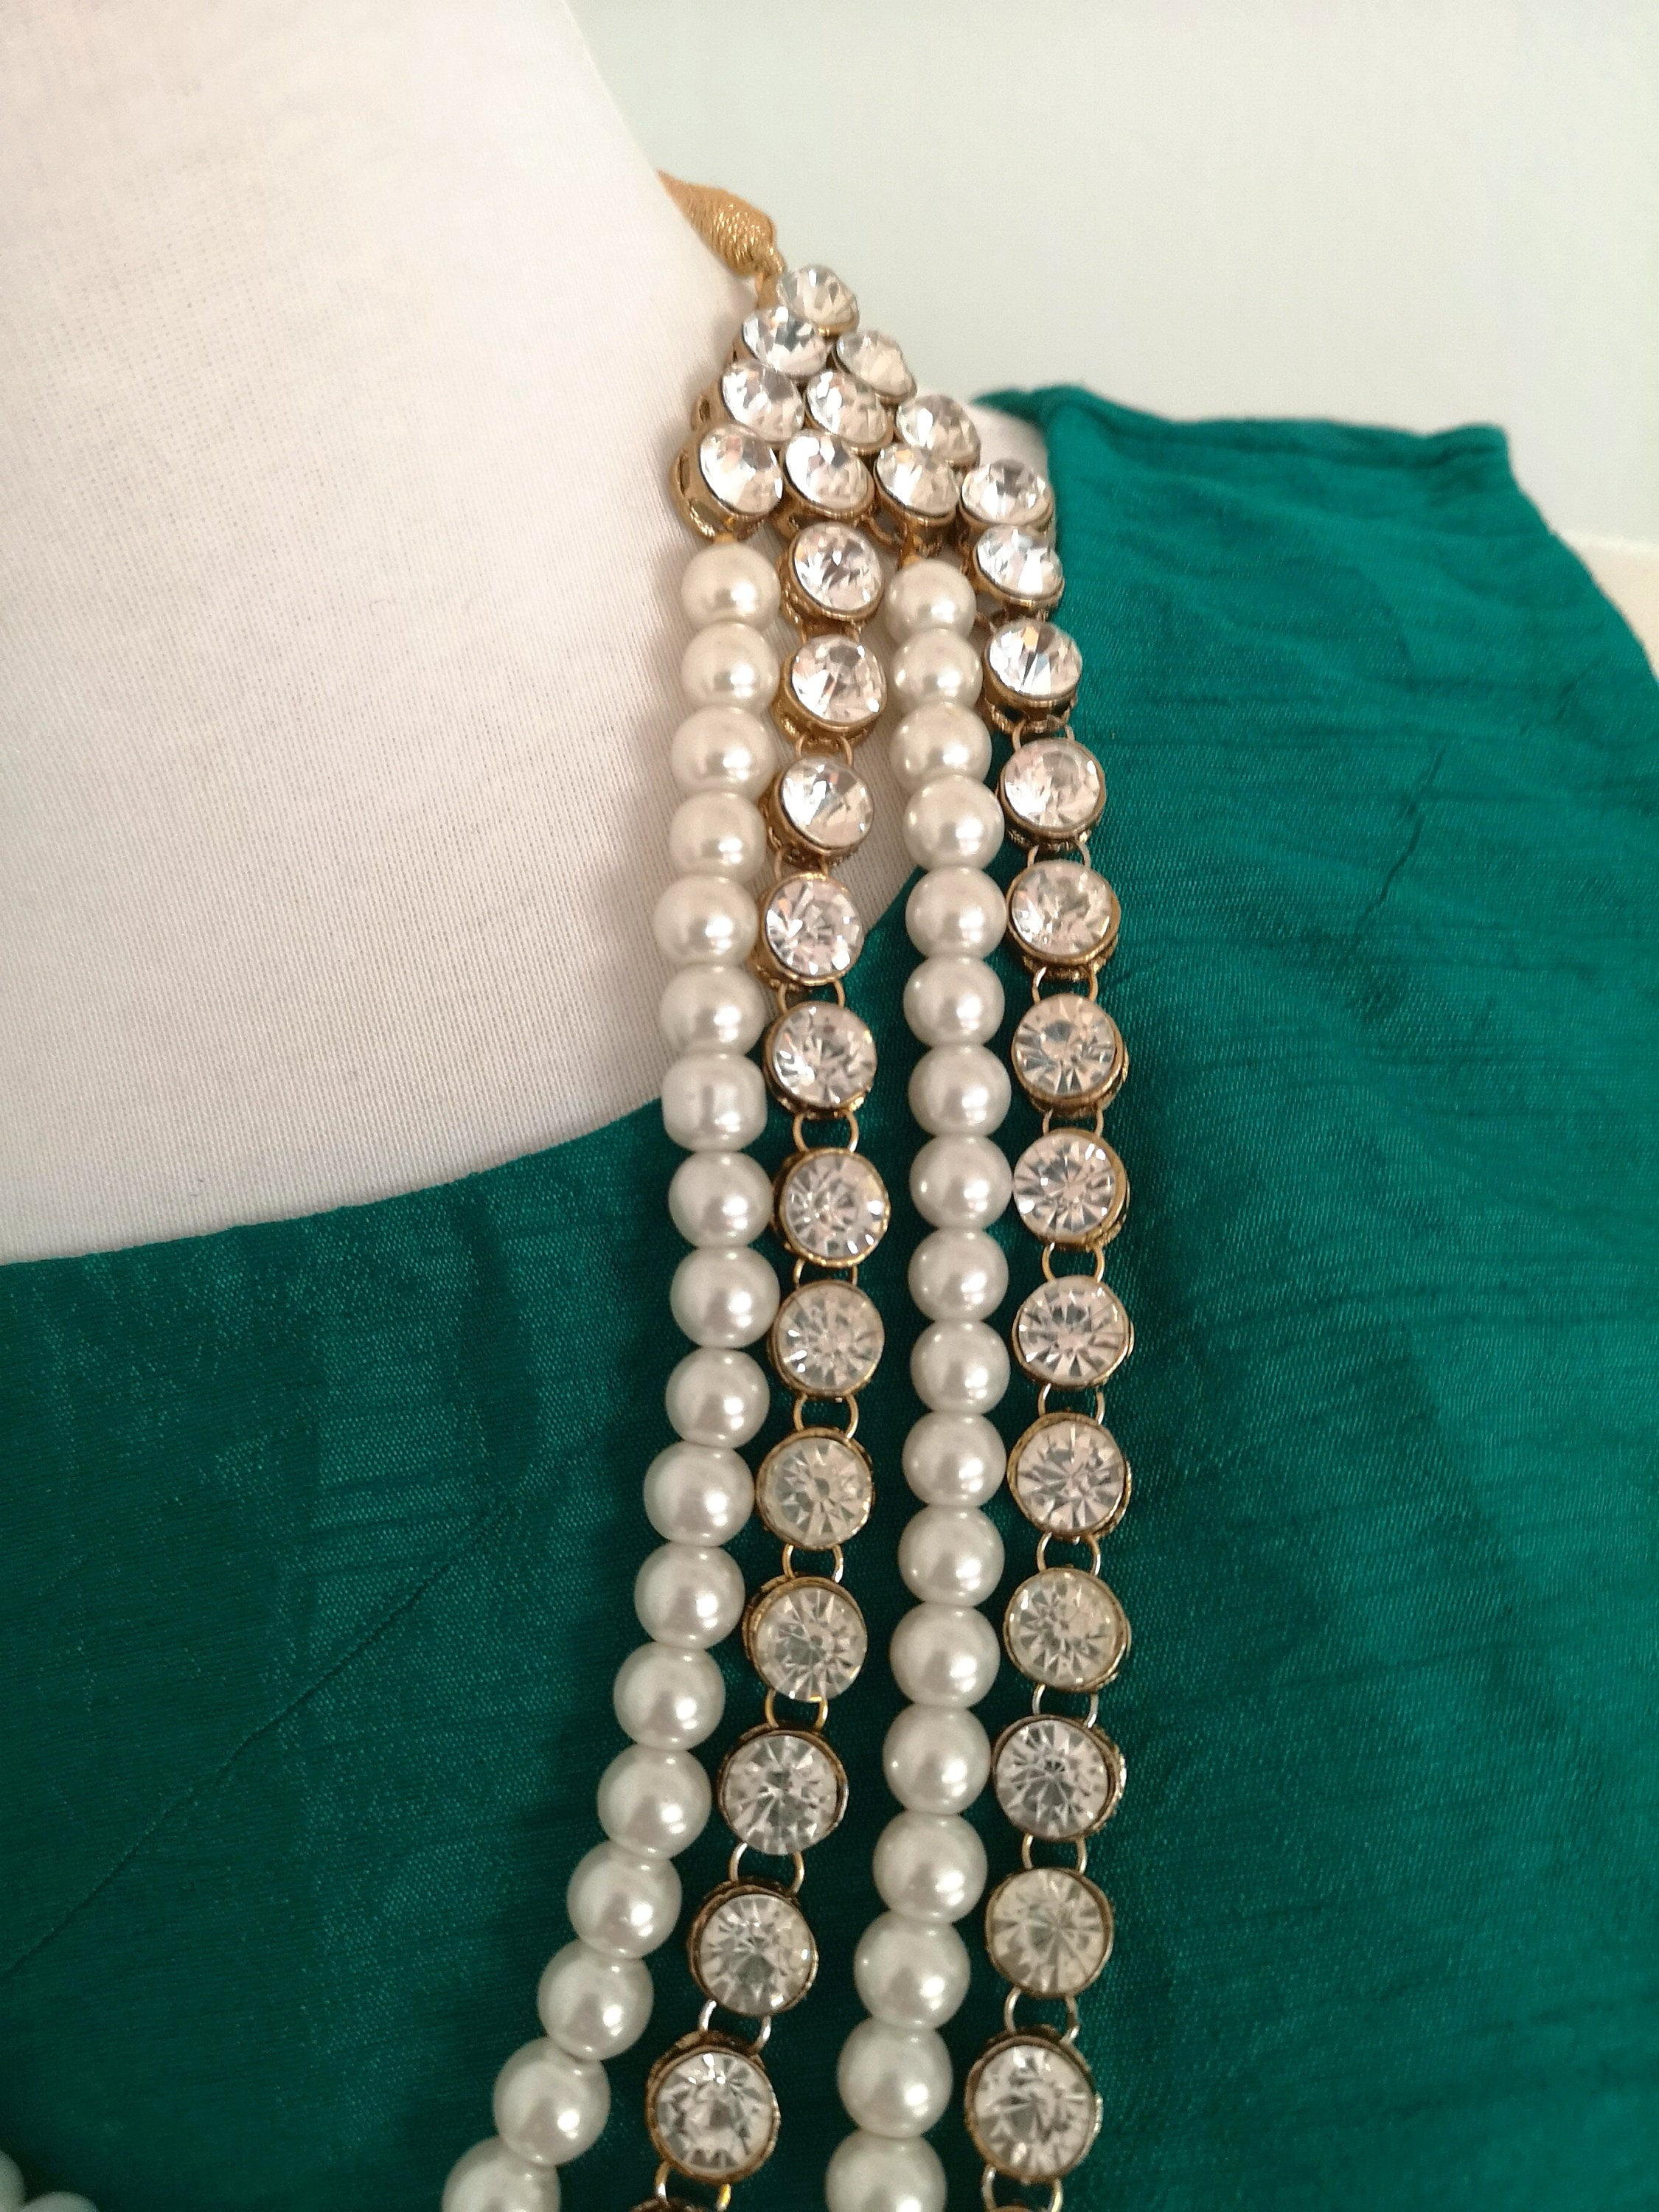 Gorgeous kundan bridal / non-bridal necklace with pearls and green semi-precious stone beads - Pink Chunari